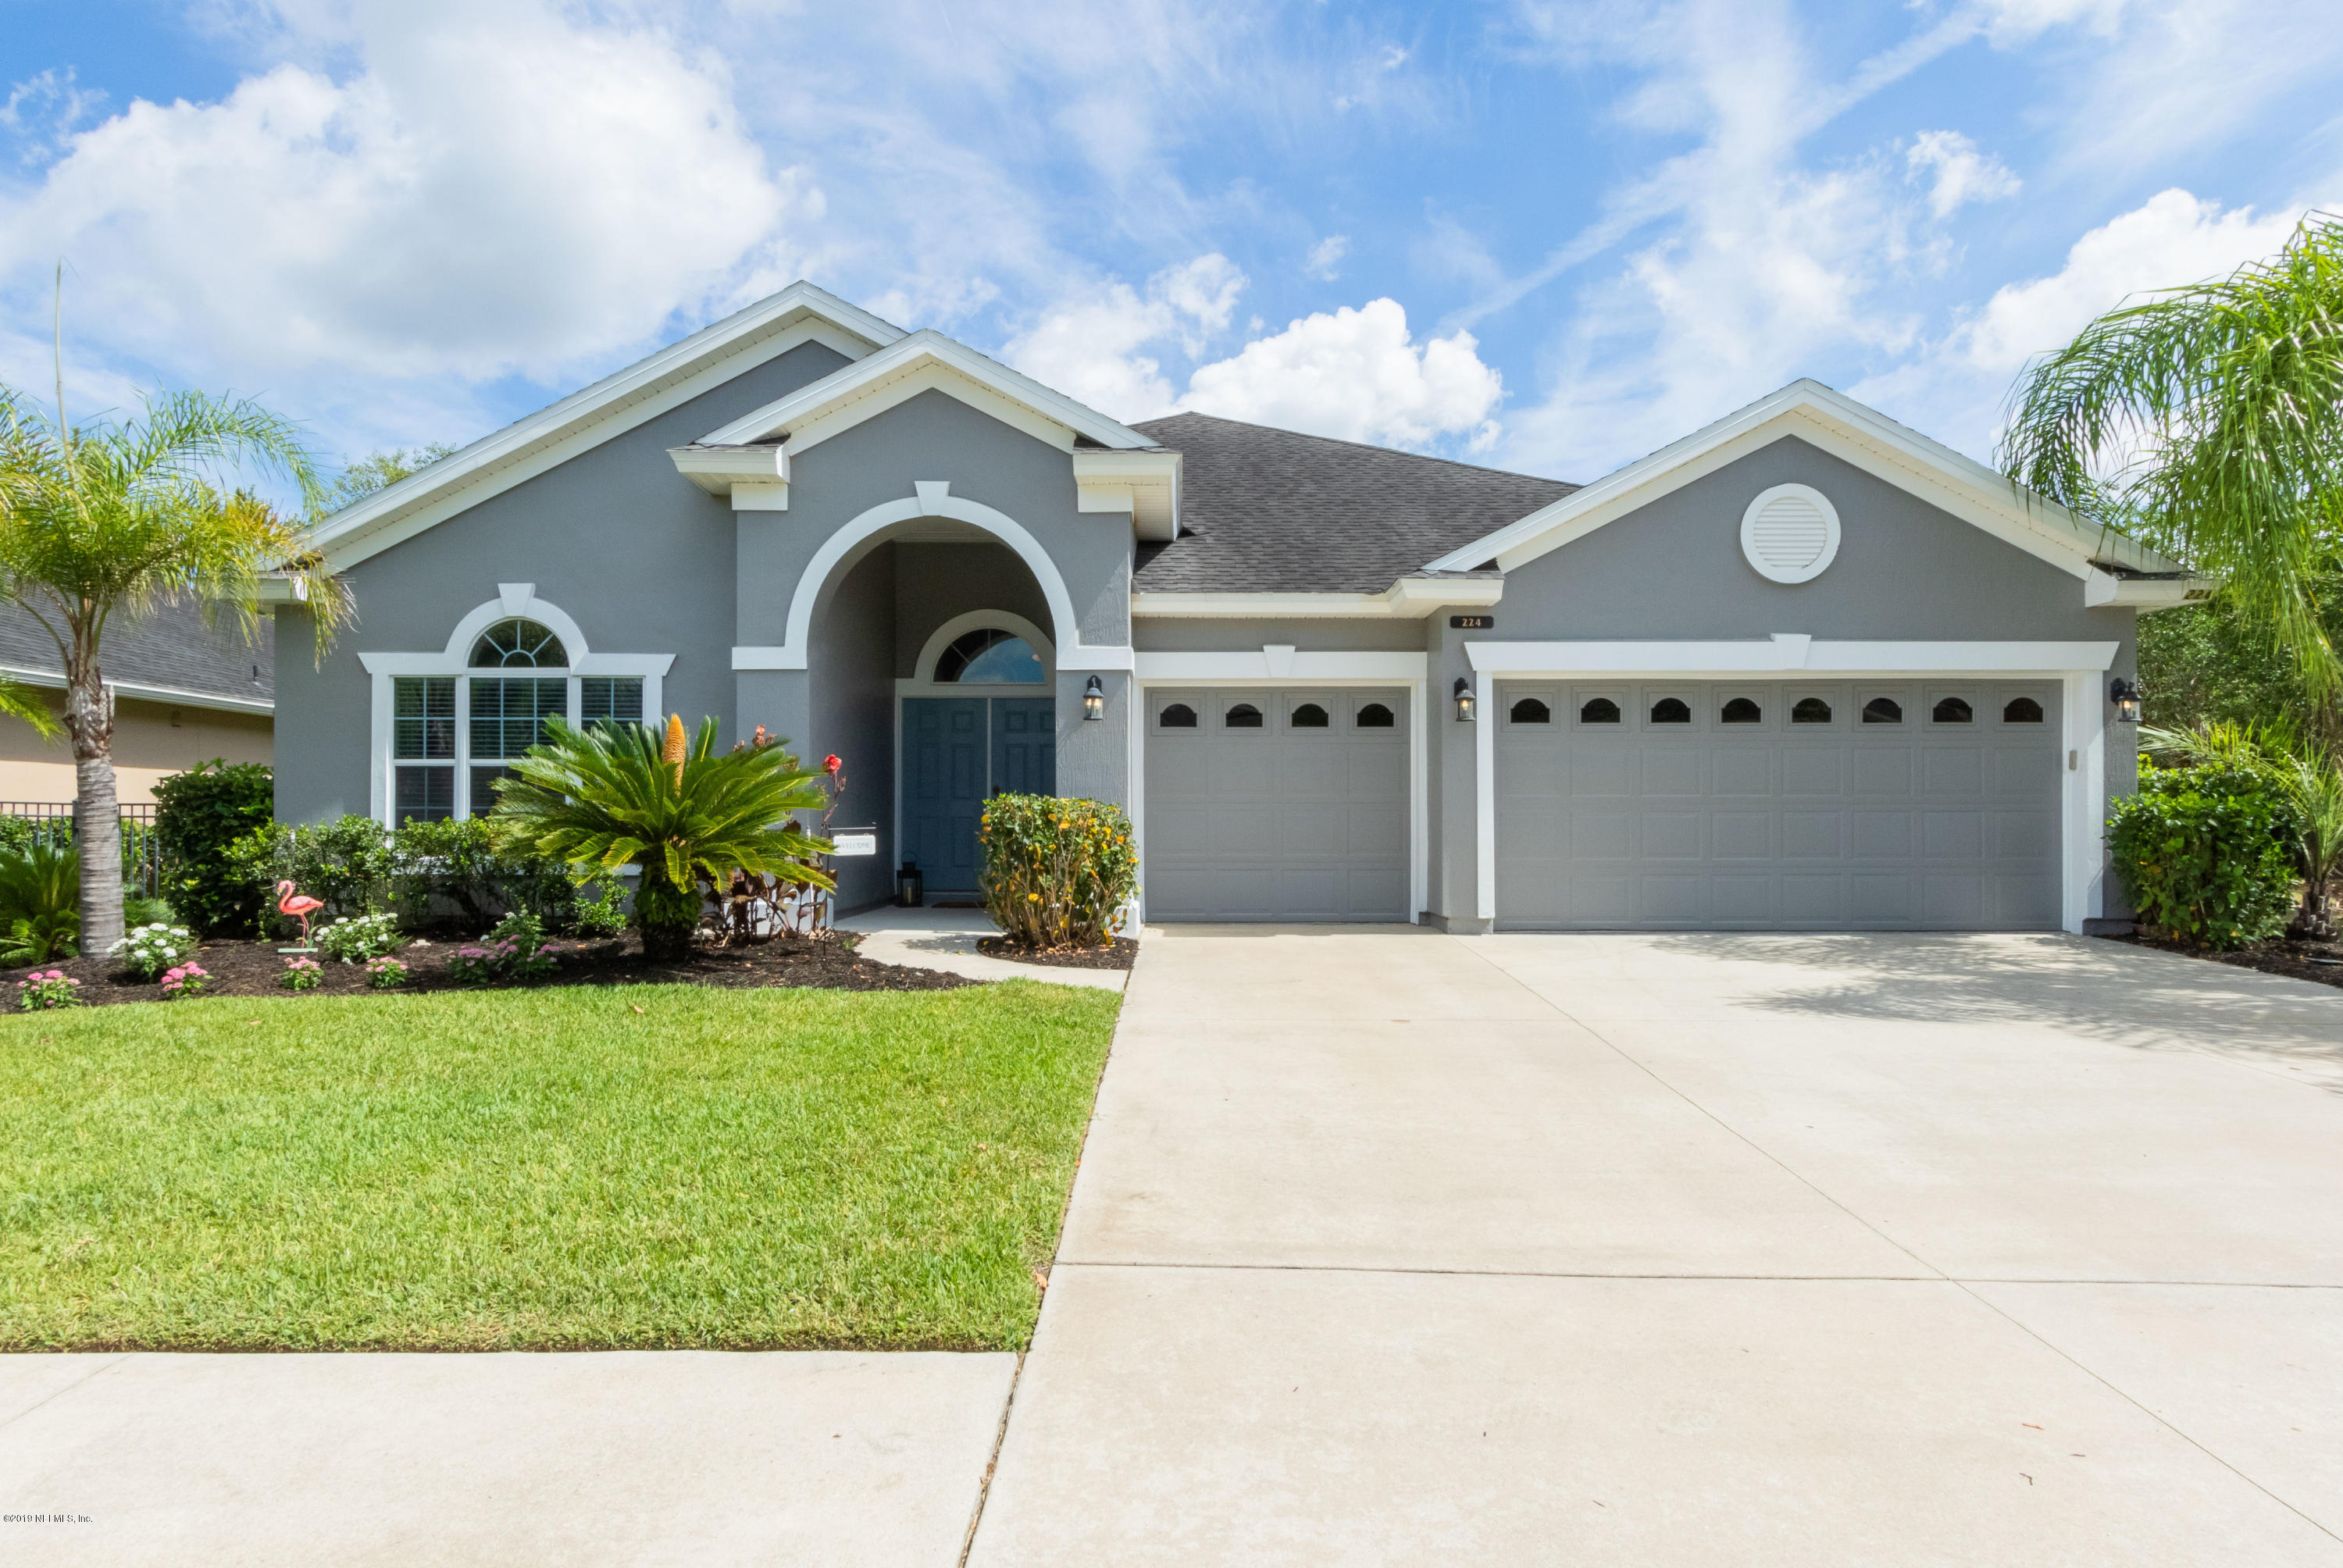 224 WILLOW WINDS, ST JOHNS, FLORIDA 32259, 4 Bedrooms Bedrooms, ,3 BathroomsBathrooms,Residential - single family,For sale,WILLOW WINDS,998773